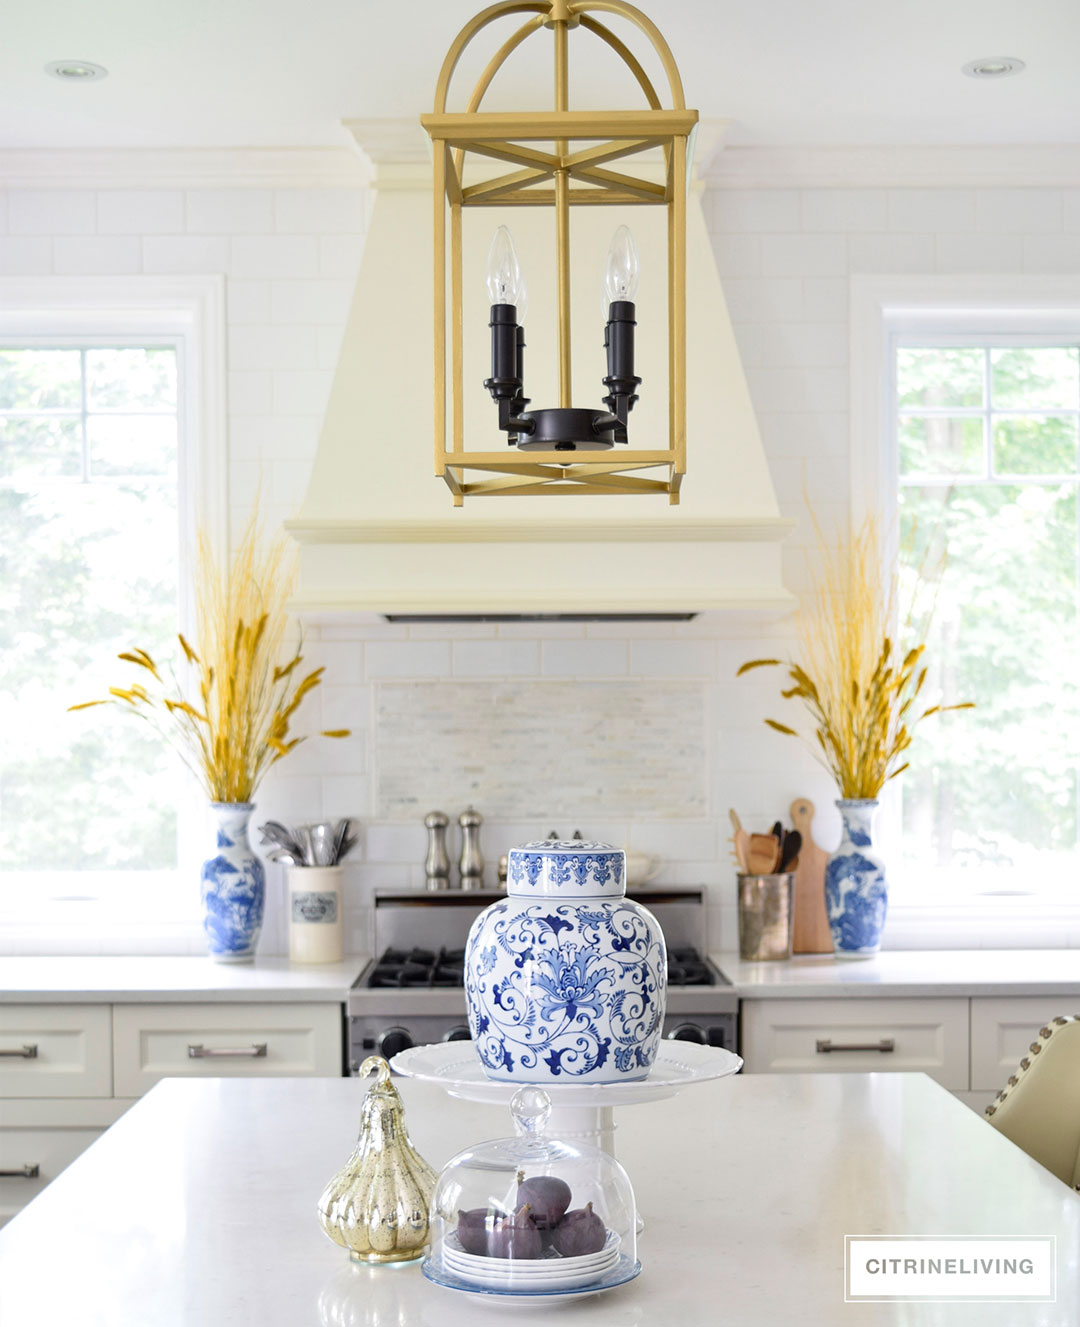 Fall decorated kitchen with blue and white ginger jars, rich gold accents and figs as a decorative element